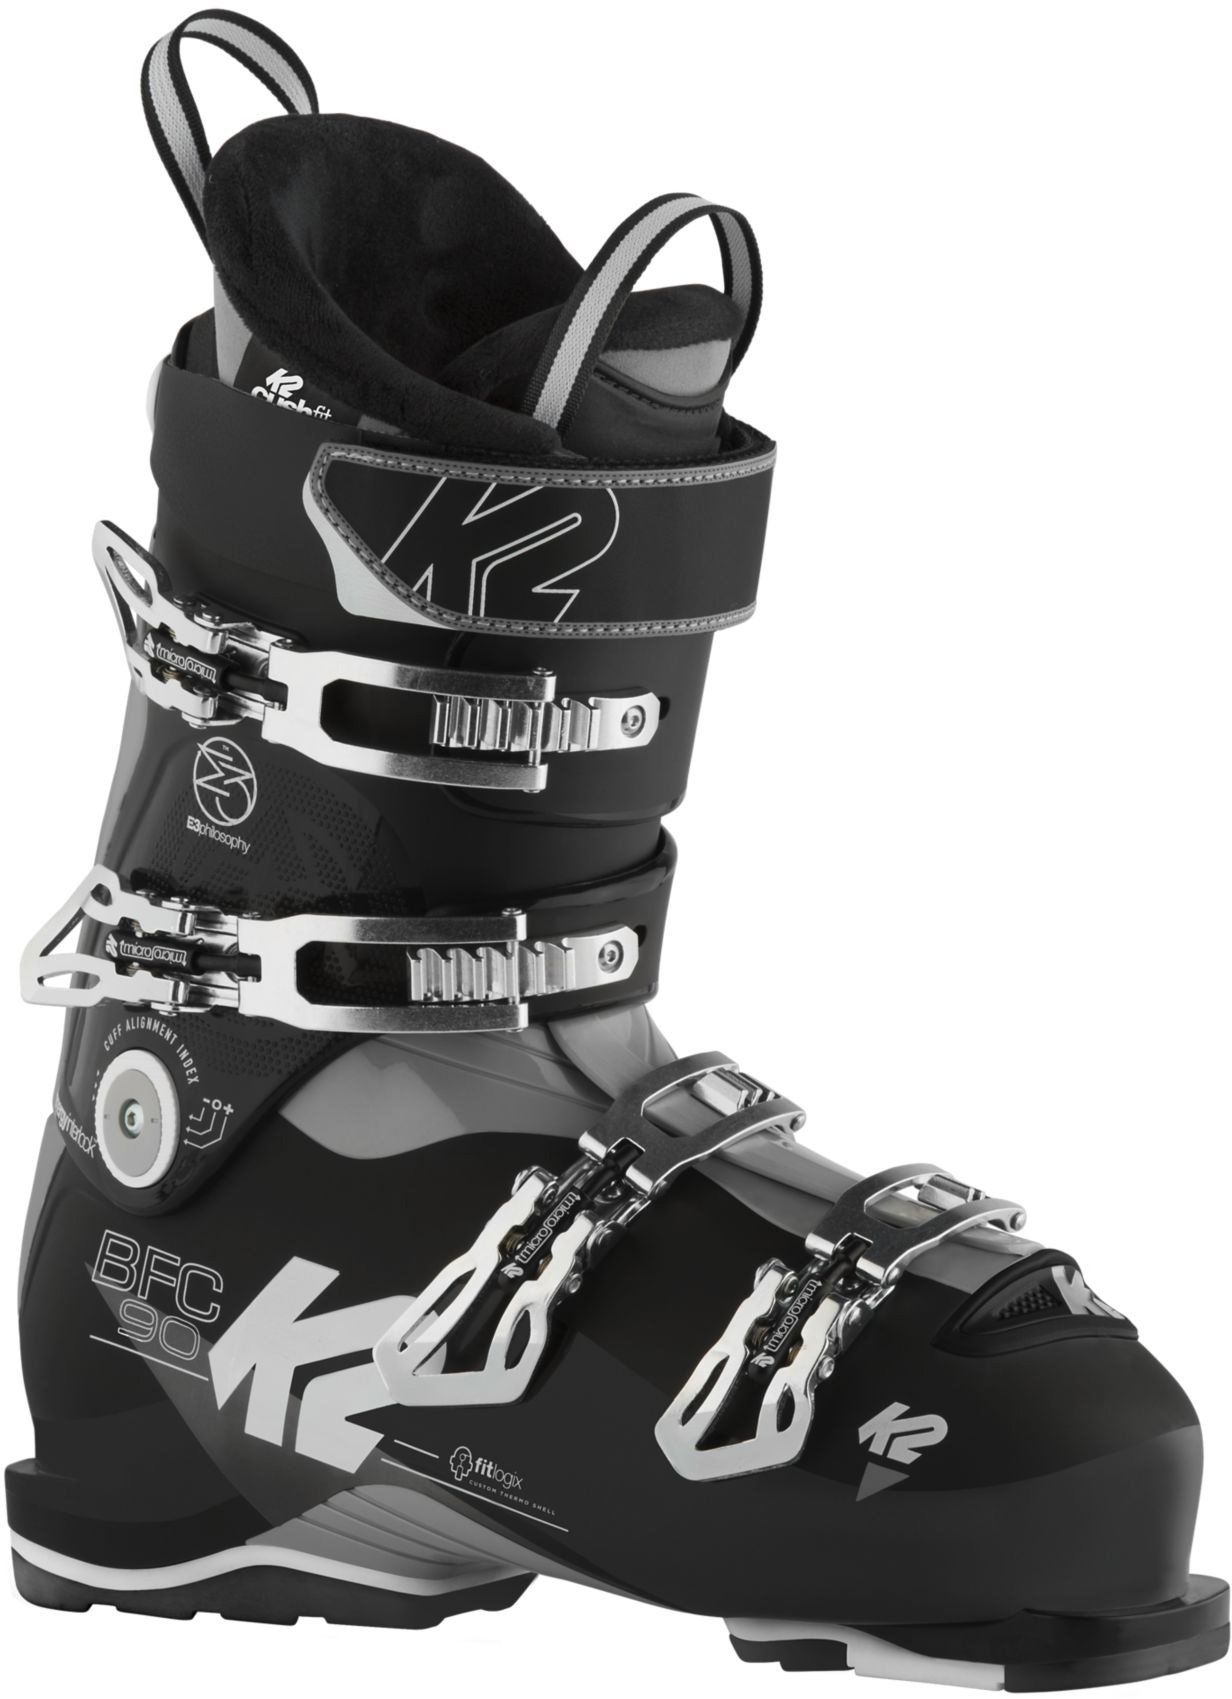 K2 BFC 90 Boot - Mens, 25.5 by K2